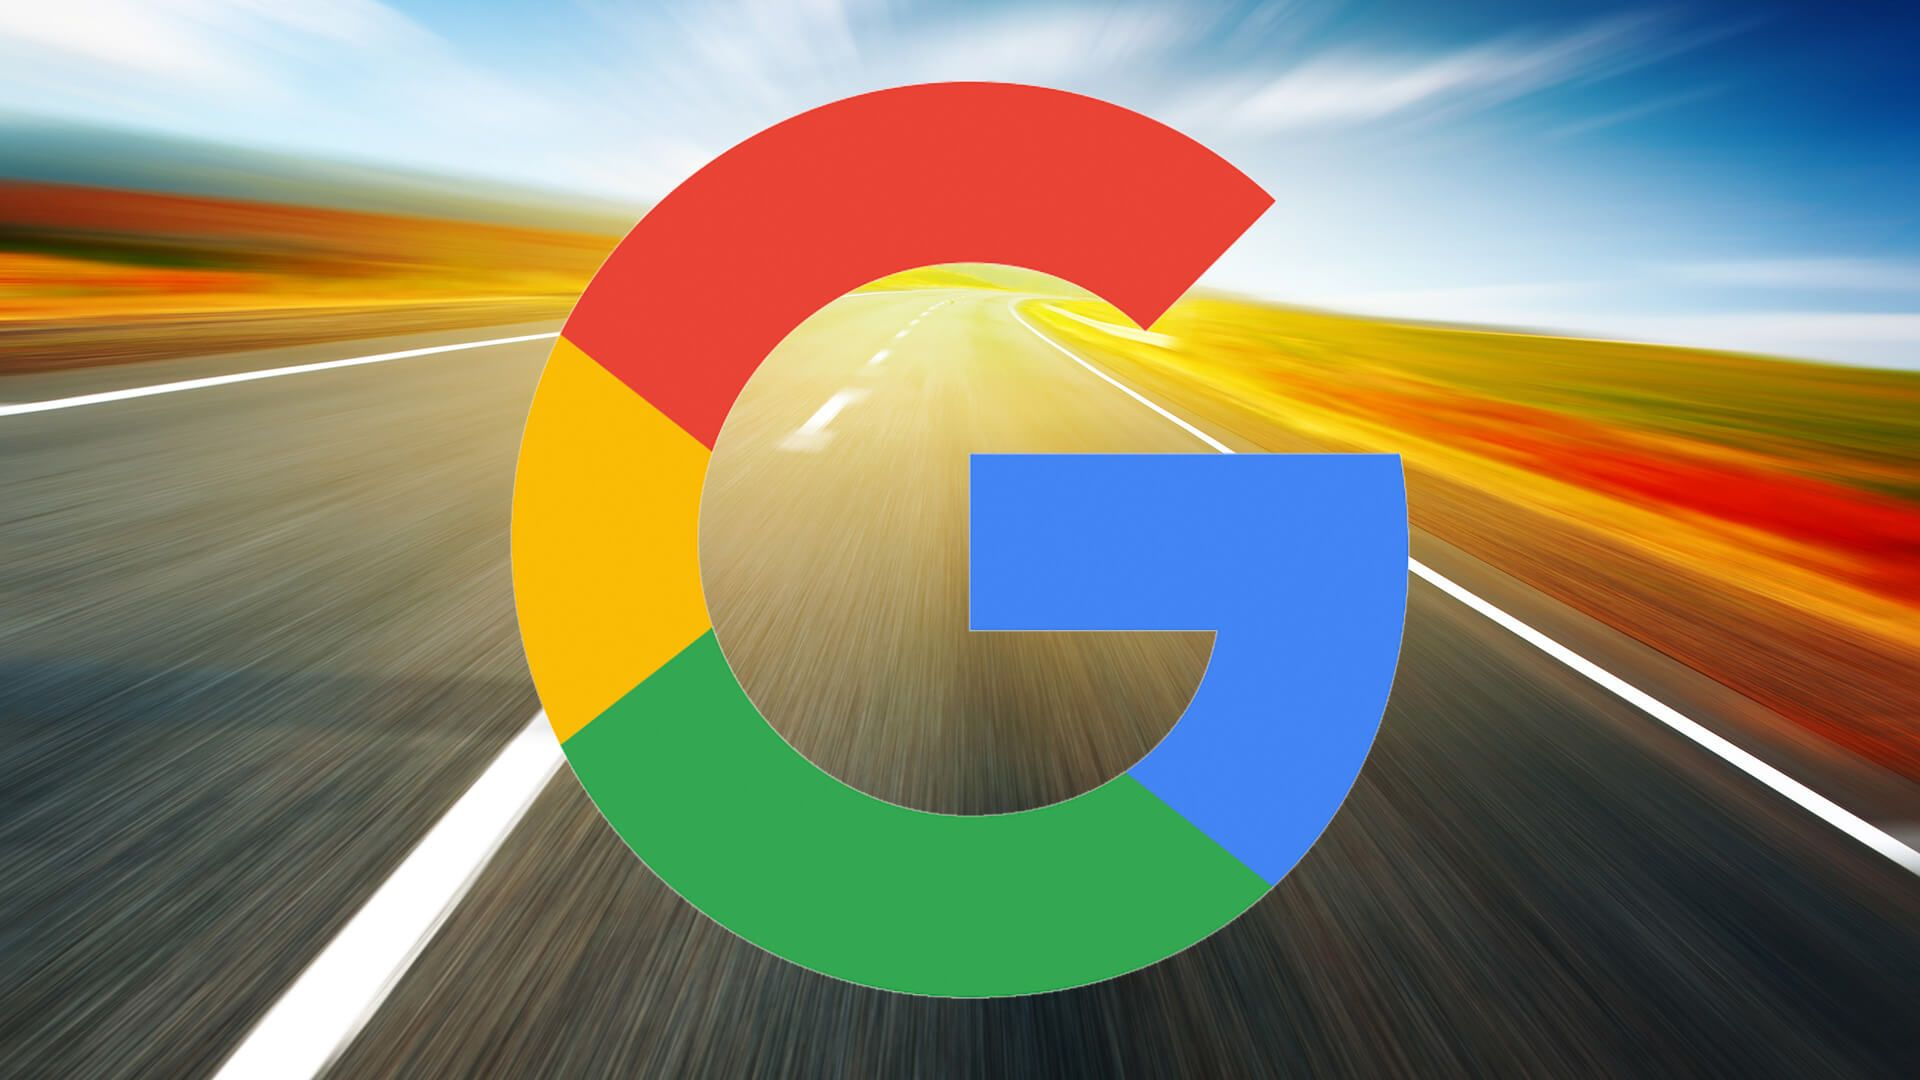 Accelerated Mobile Pages (AMP) burst into Google search results. AMP shows momentum as Google races to make mobile web more user-friendly.